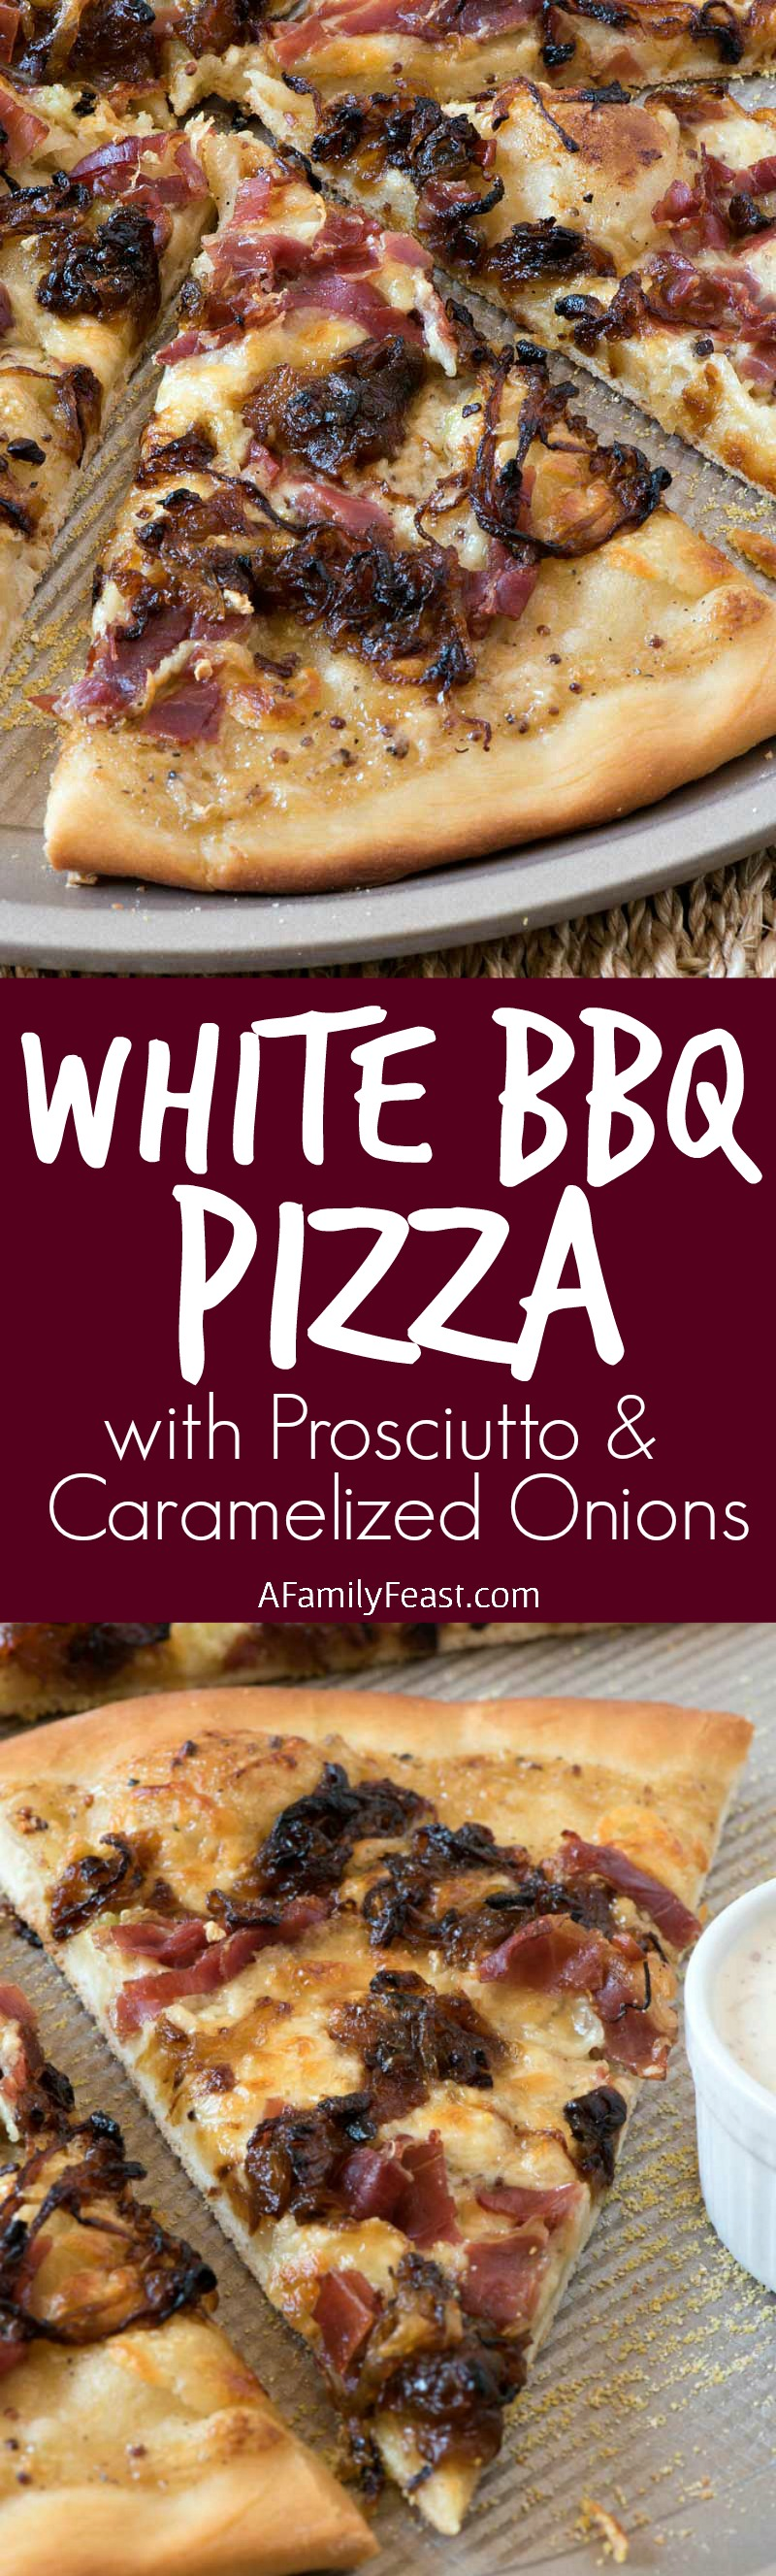 White Barbecue Pizza with Prosciutto and Caramelized Onions - Pizza dough topped with a creamy, zesty sauce, crisp and salty prosciutto, and sweet caramelized onions. Heaven!